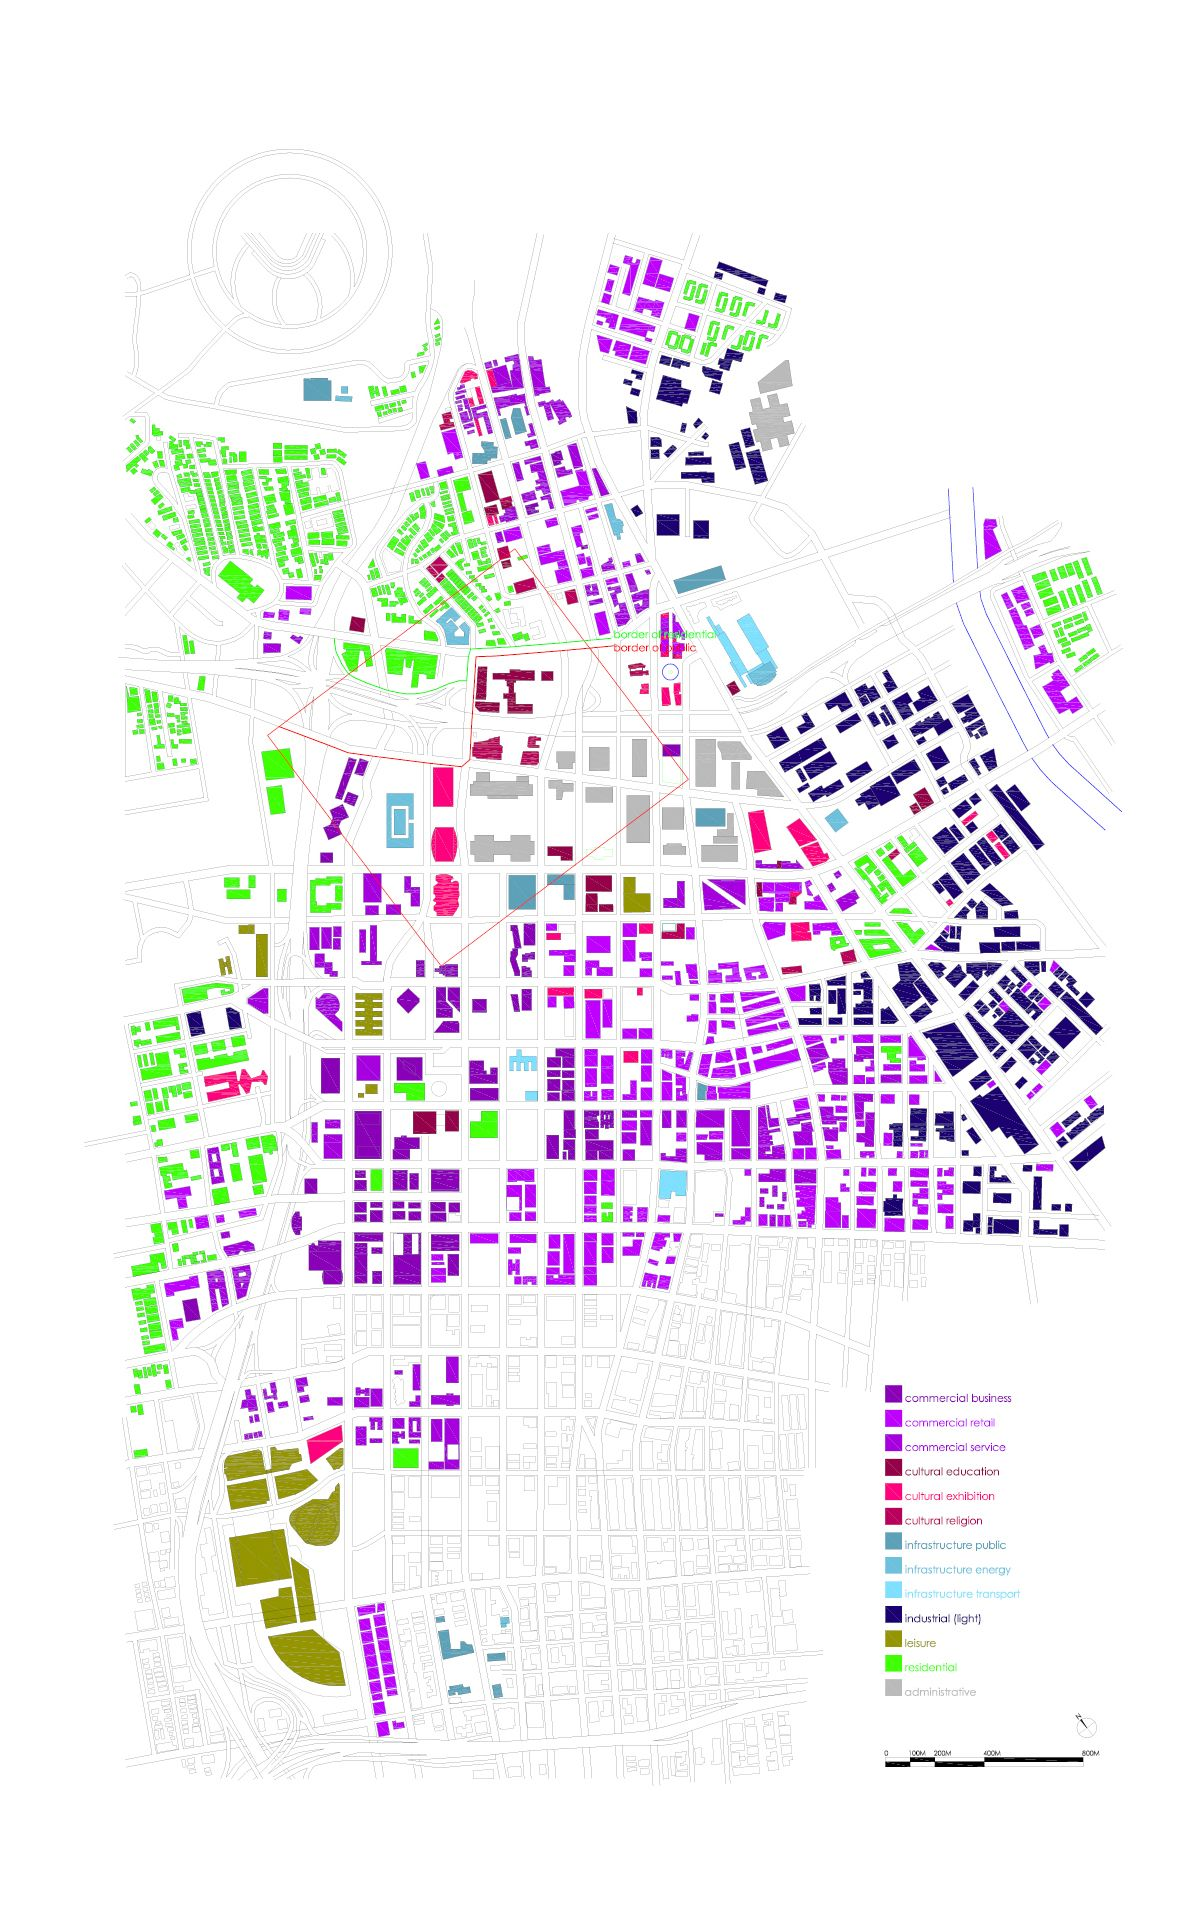 This Is Diagram Of A Zoning Map Of Downtown Los Angeles By A - Los angeles zoning map